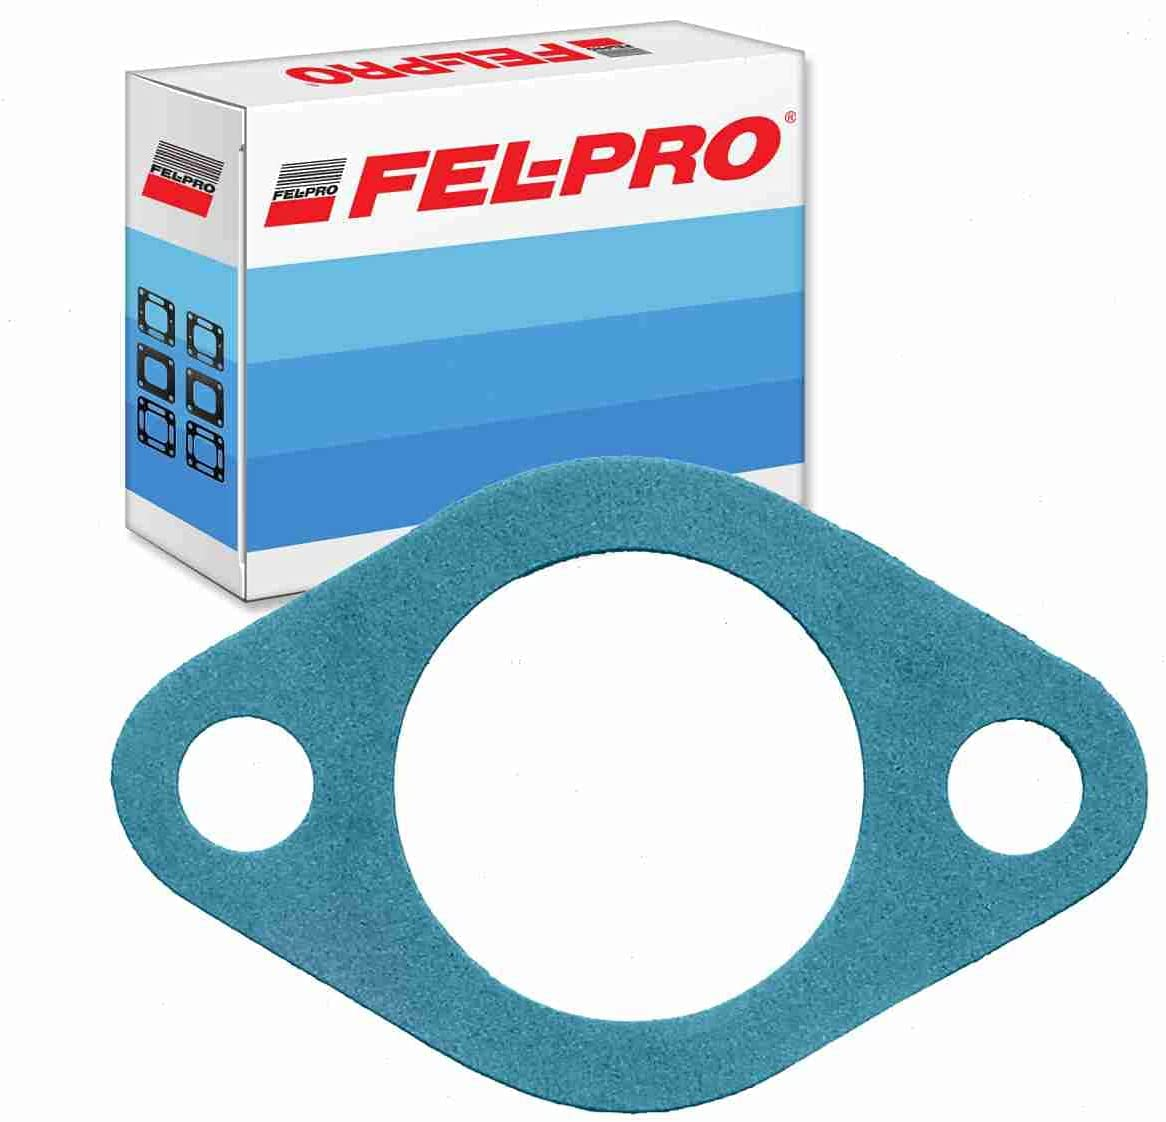 Fel-Pro Engine Water Pump Gasket compatible Max 43% OFF Same day shipping Cheve Chevrolet with